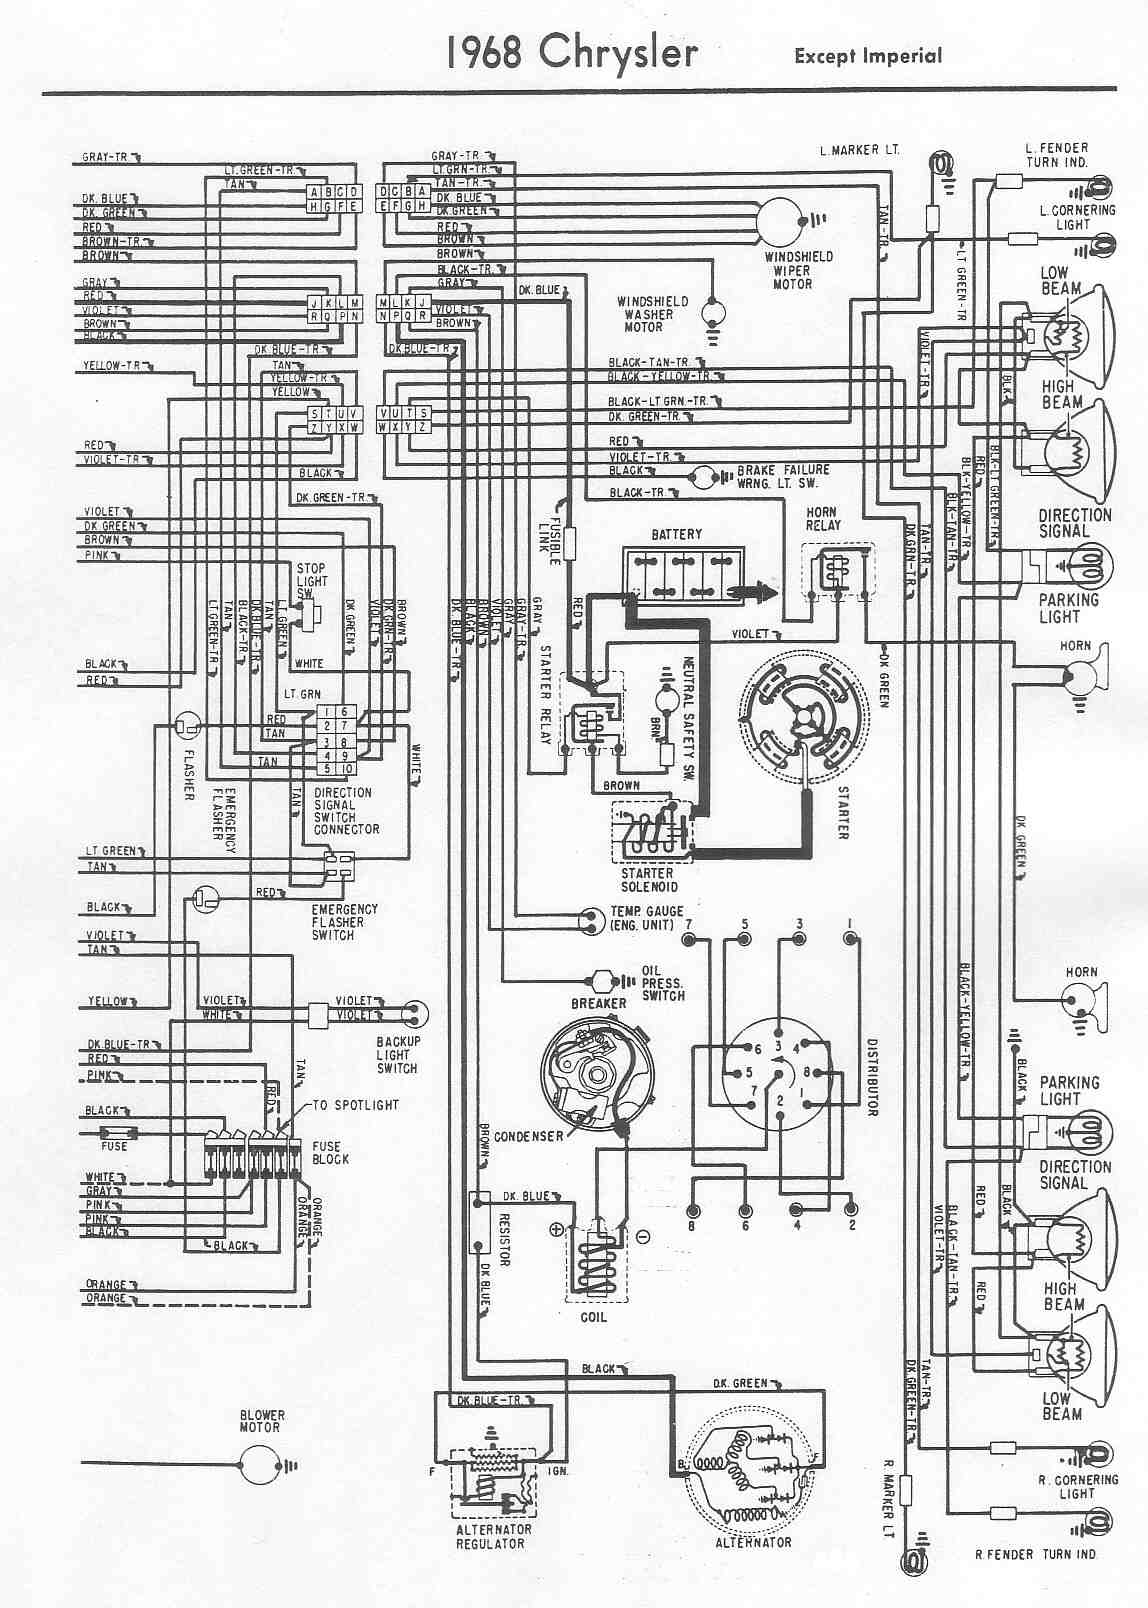 small resolution of 1966 gto wiring schematic wiring diagram g8 1967 camaro wiring schematic 1966 gto wiper wiring diagram schematic